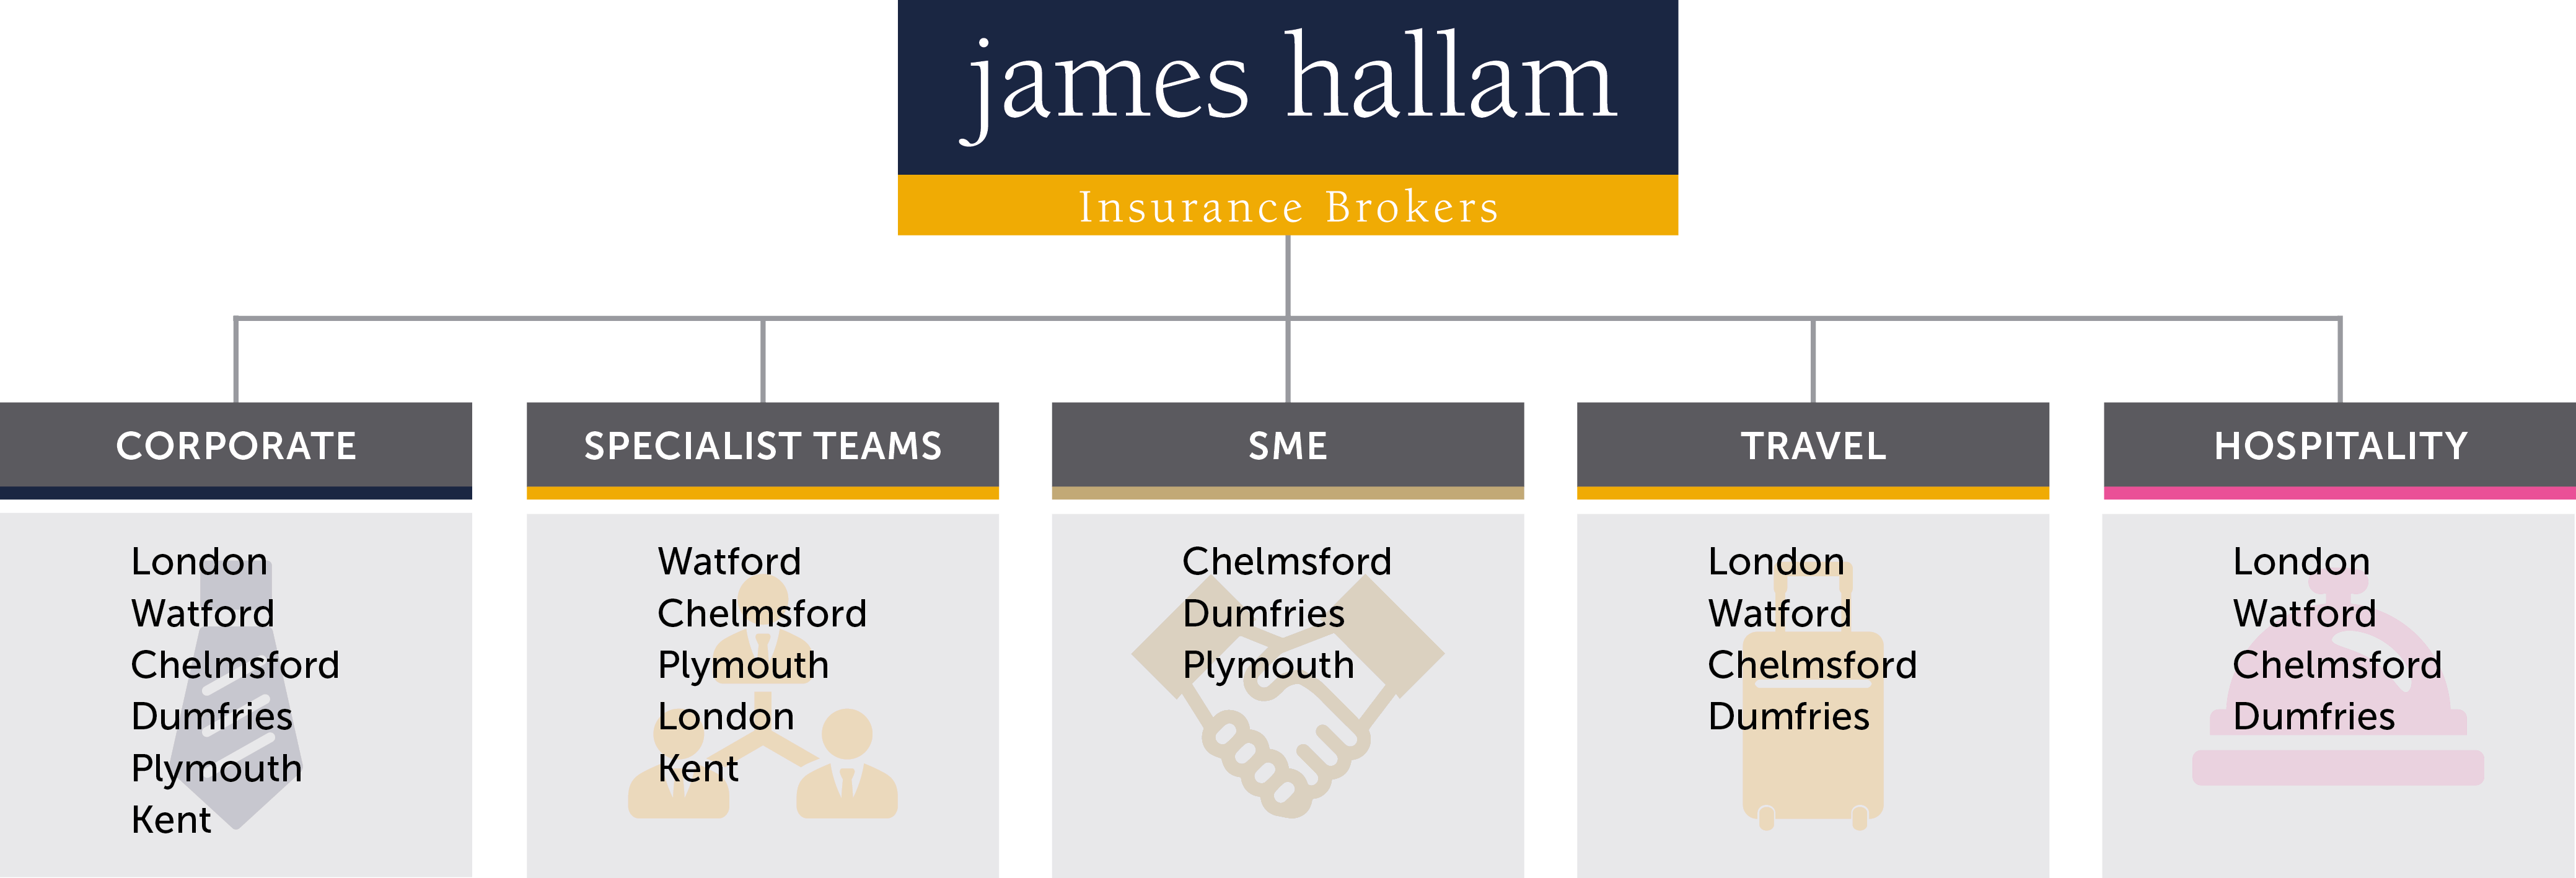 company-structure-updated-aug-2020